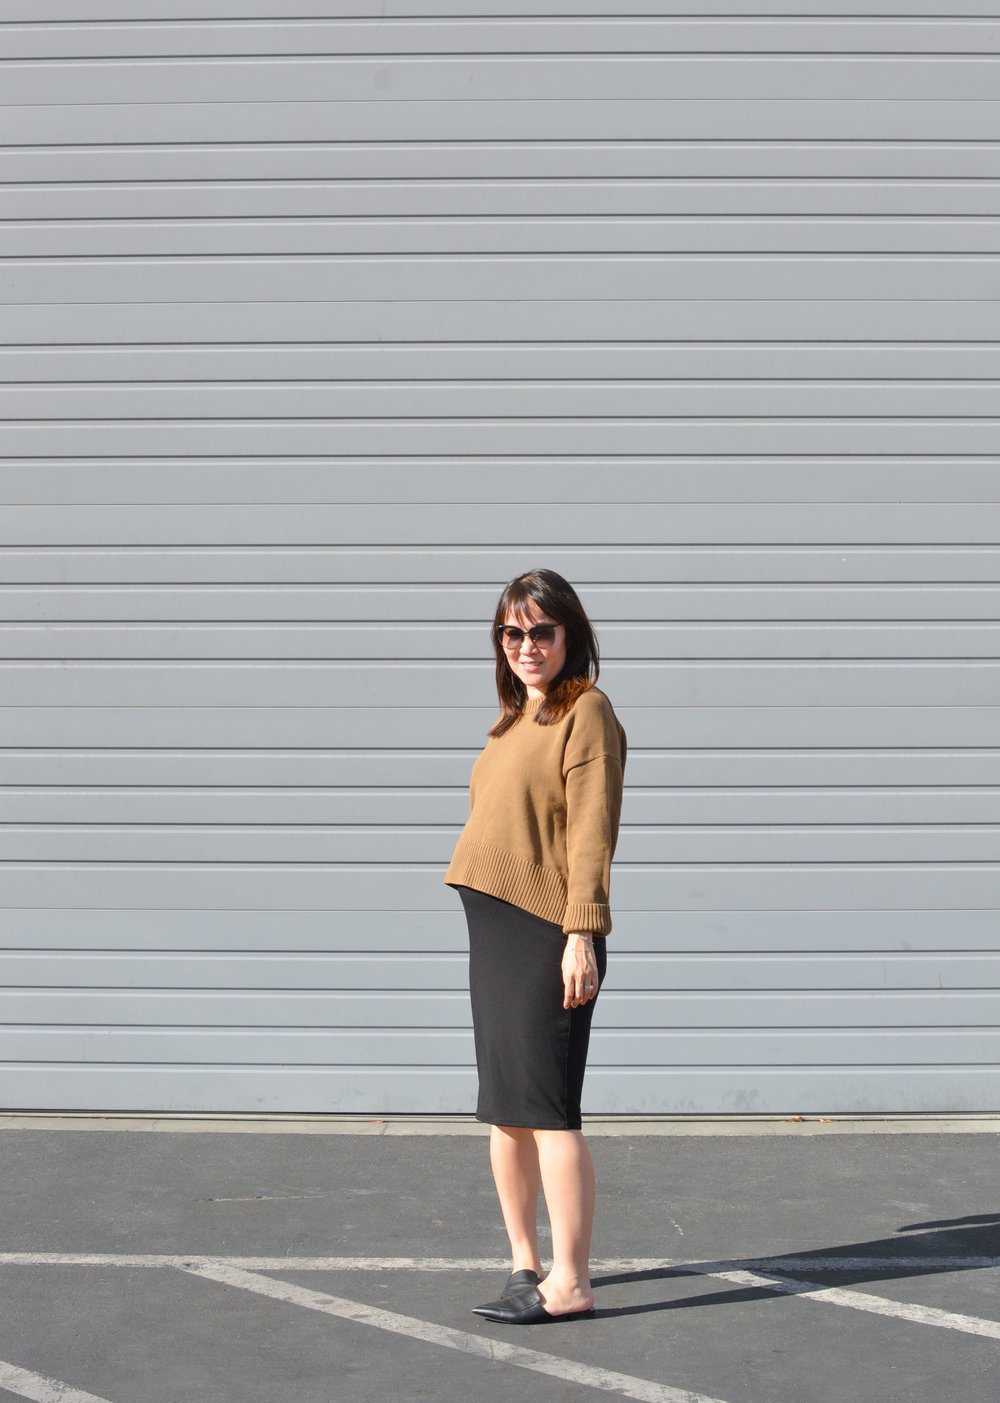 Everlane review soft cotton square crew (1 of 4)-min.jpg